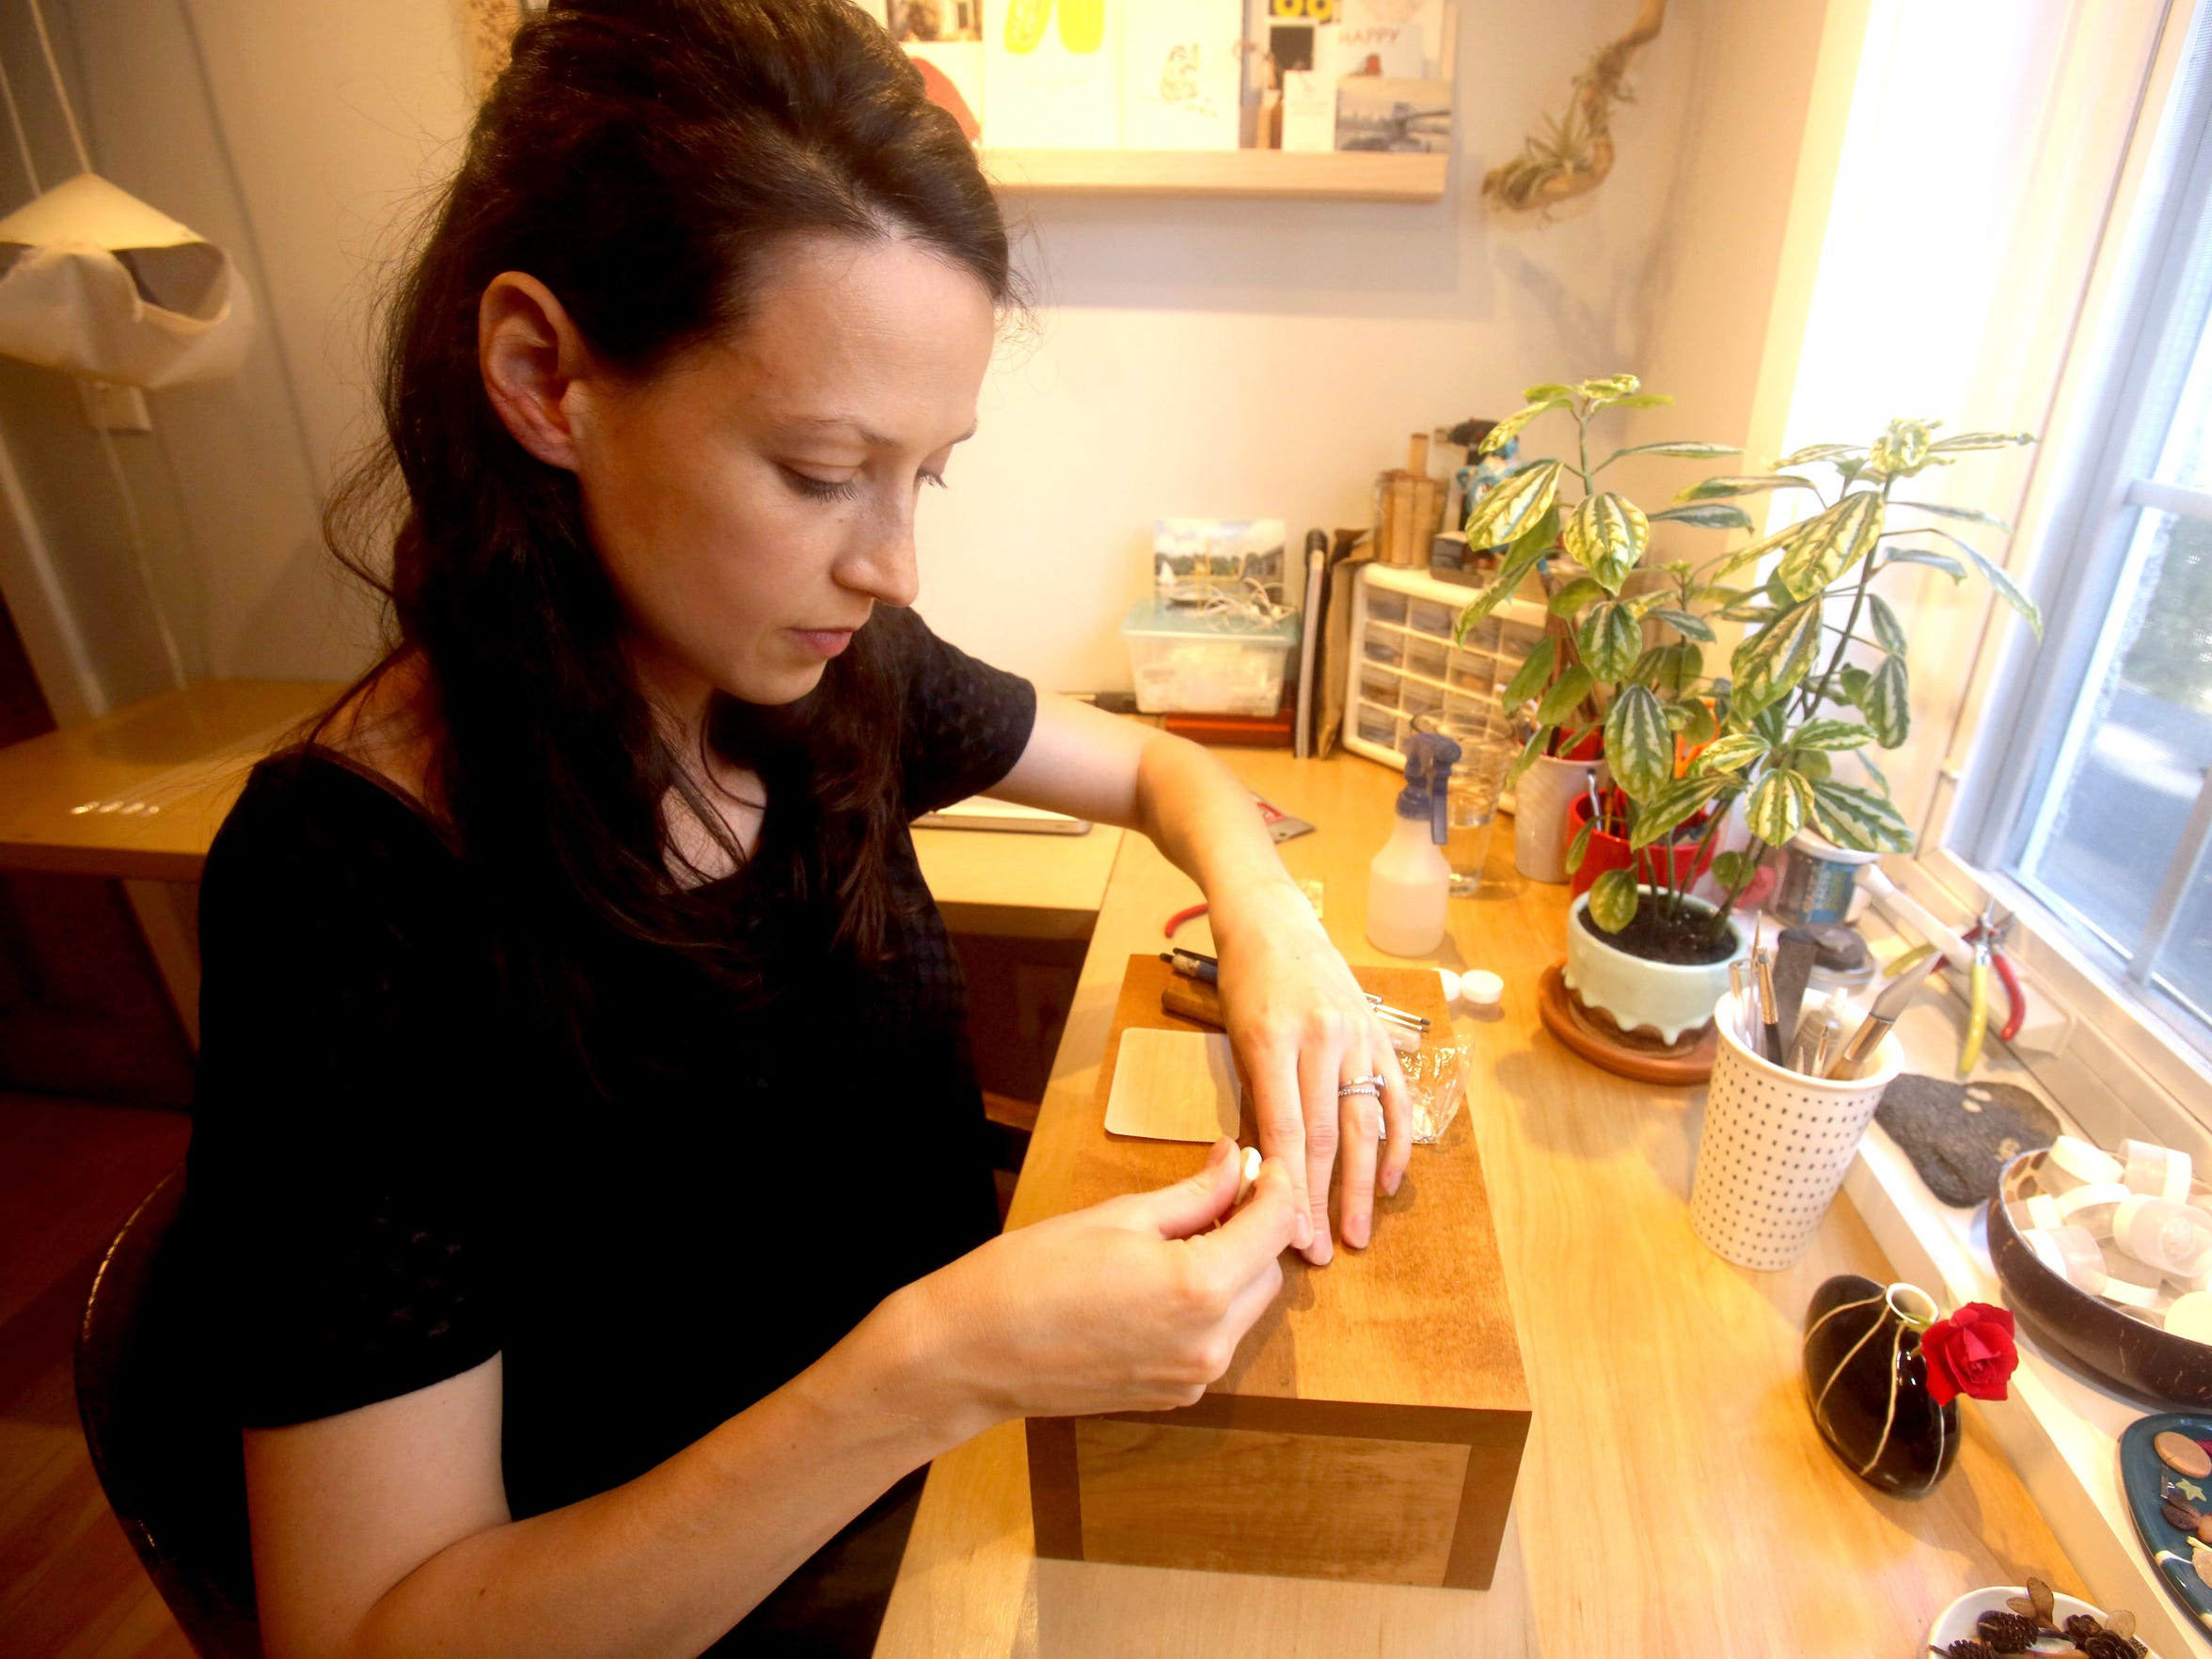 Jewelry maker Caitlin McNamara works in her home studio